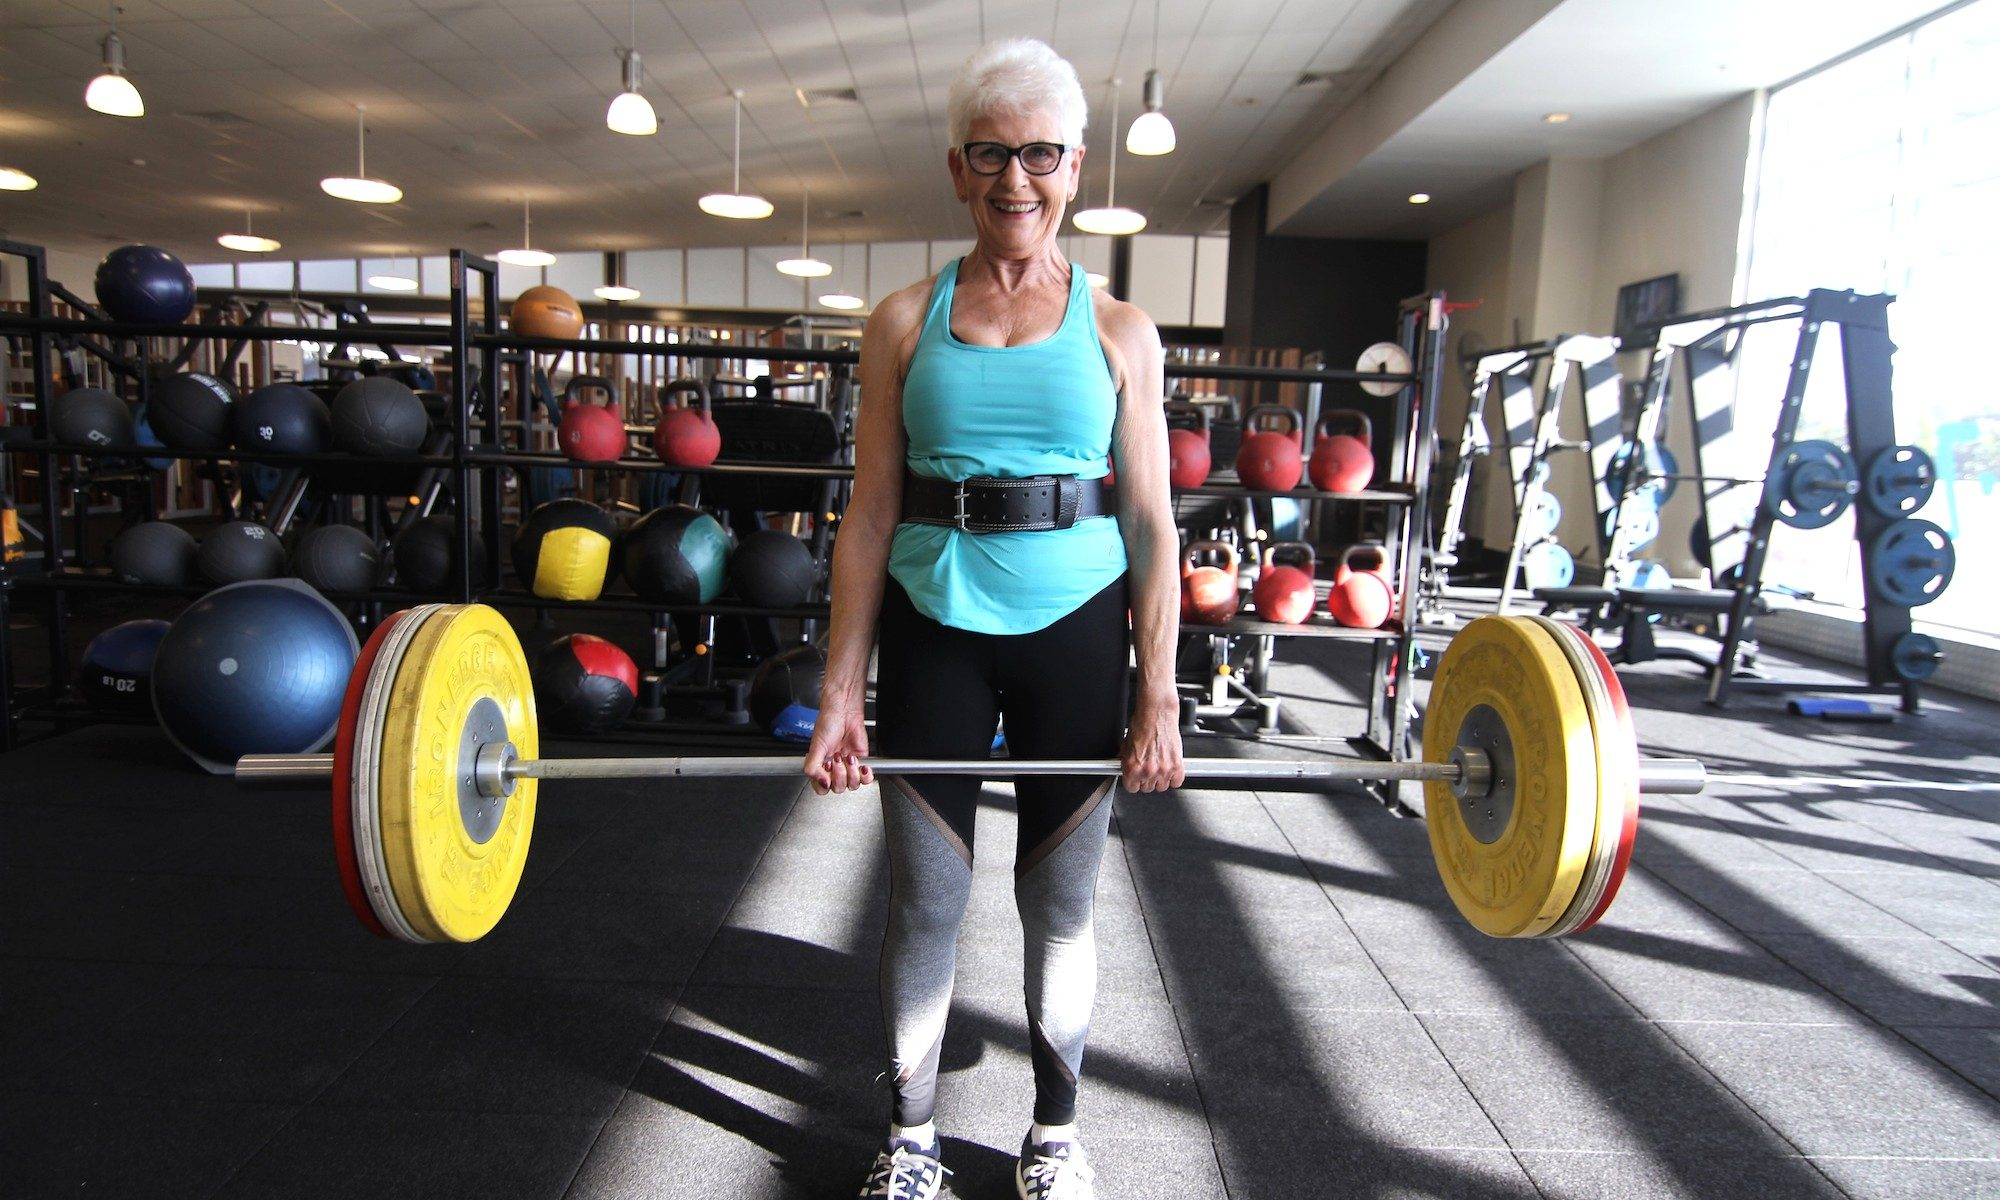 Marion Keane - A former nun turned weightlifter, at age 77 Marion won her category of Powerlifting Australia's national competition. From caring for her late husband who suffered Parkinson's Disease for twenty years, Marion joined a local health club to deal with the stress of being her husband's principal carer, and went on to become a powerlifting champion.